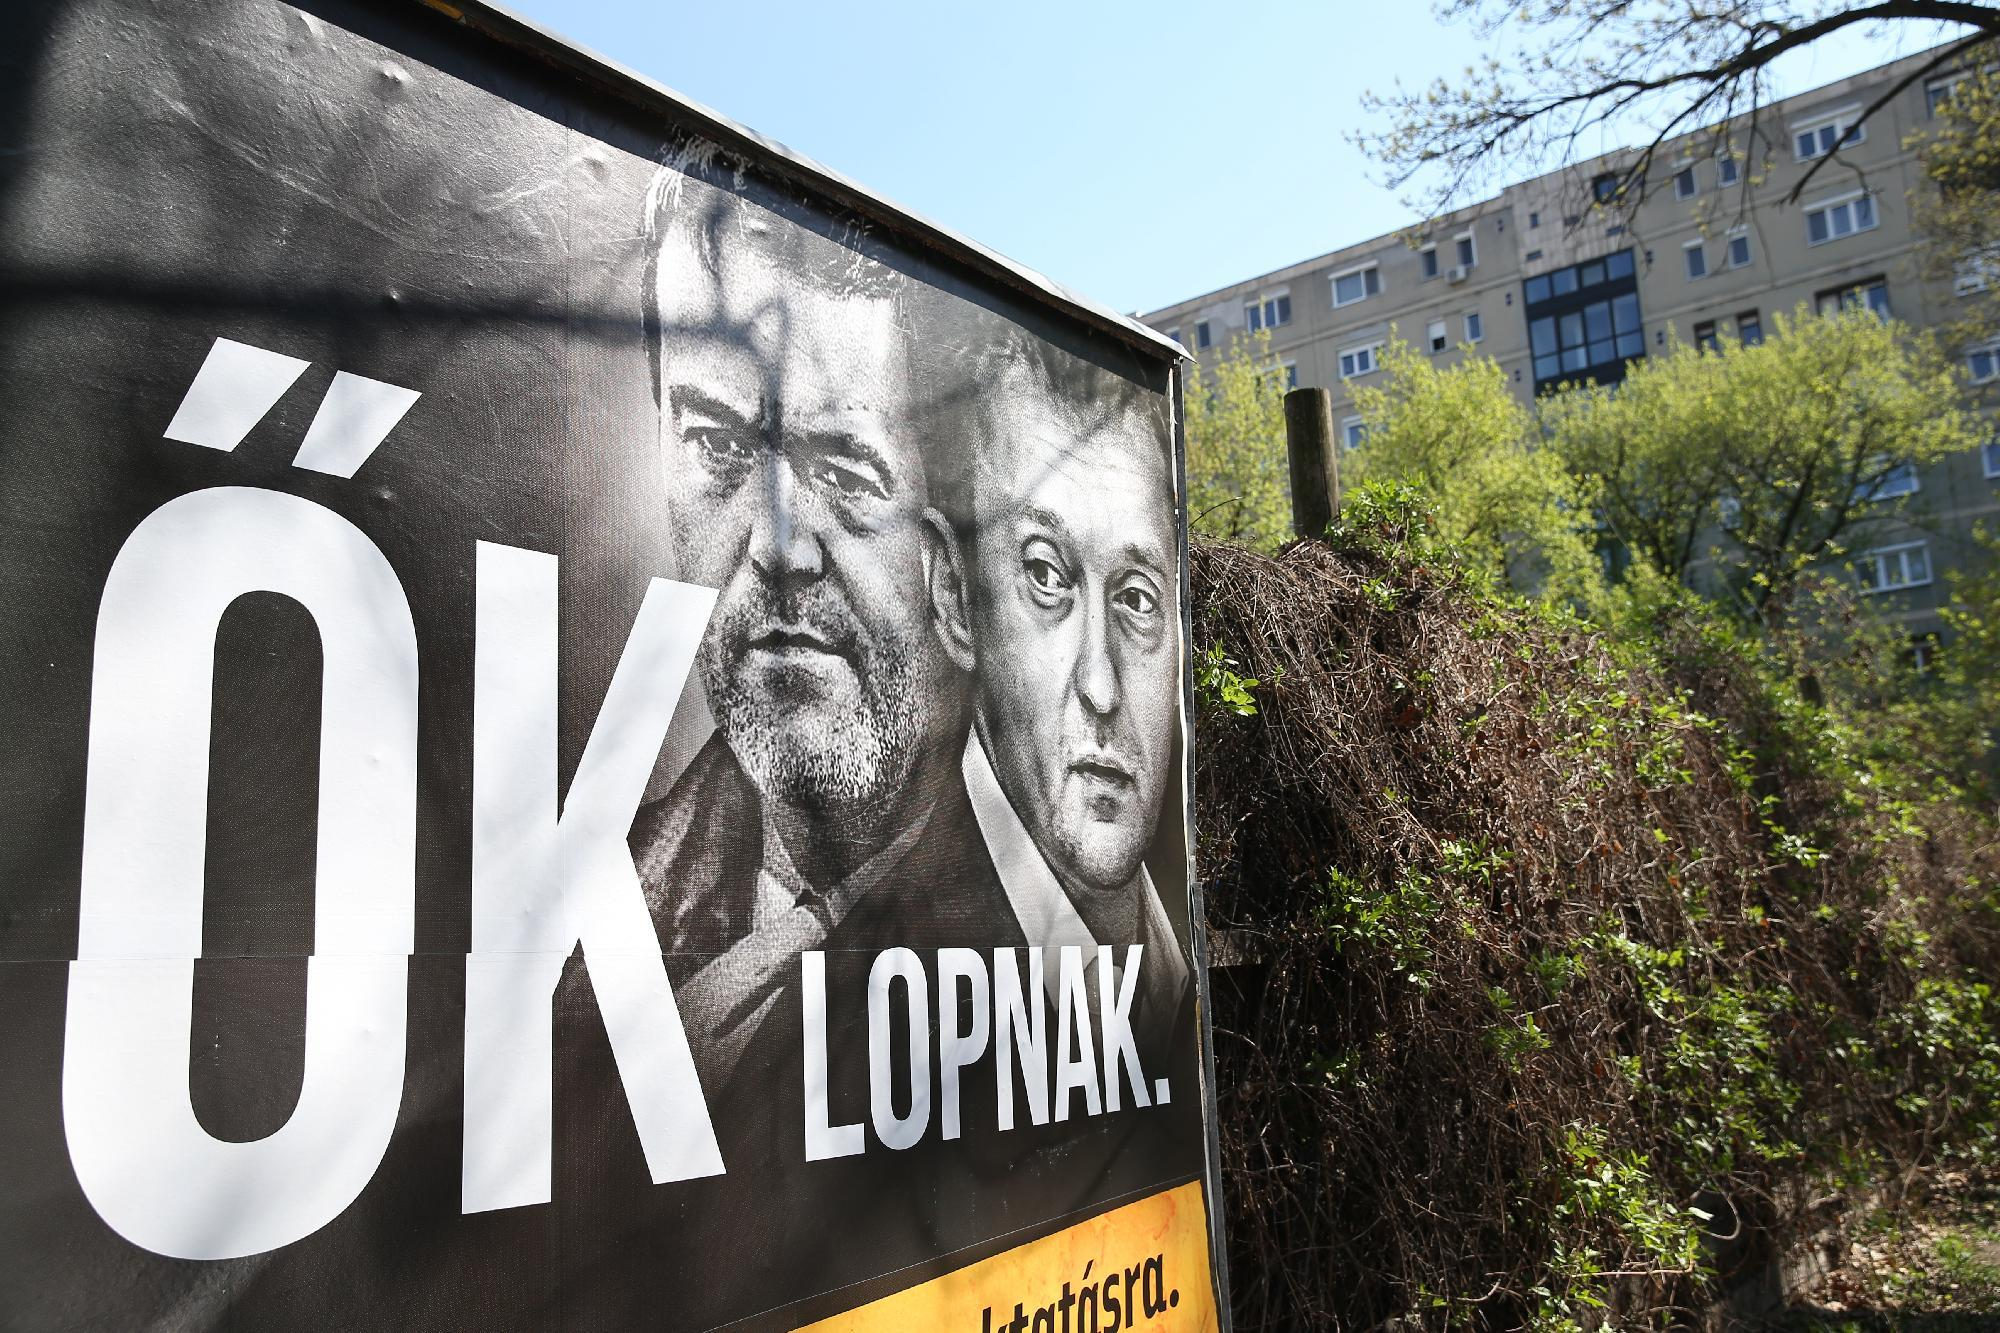 Unofficial Adviser To PM Árpád Habony Sues Jobbik Over Campaign Ads